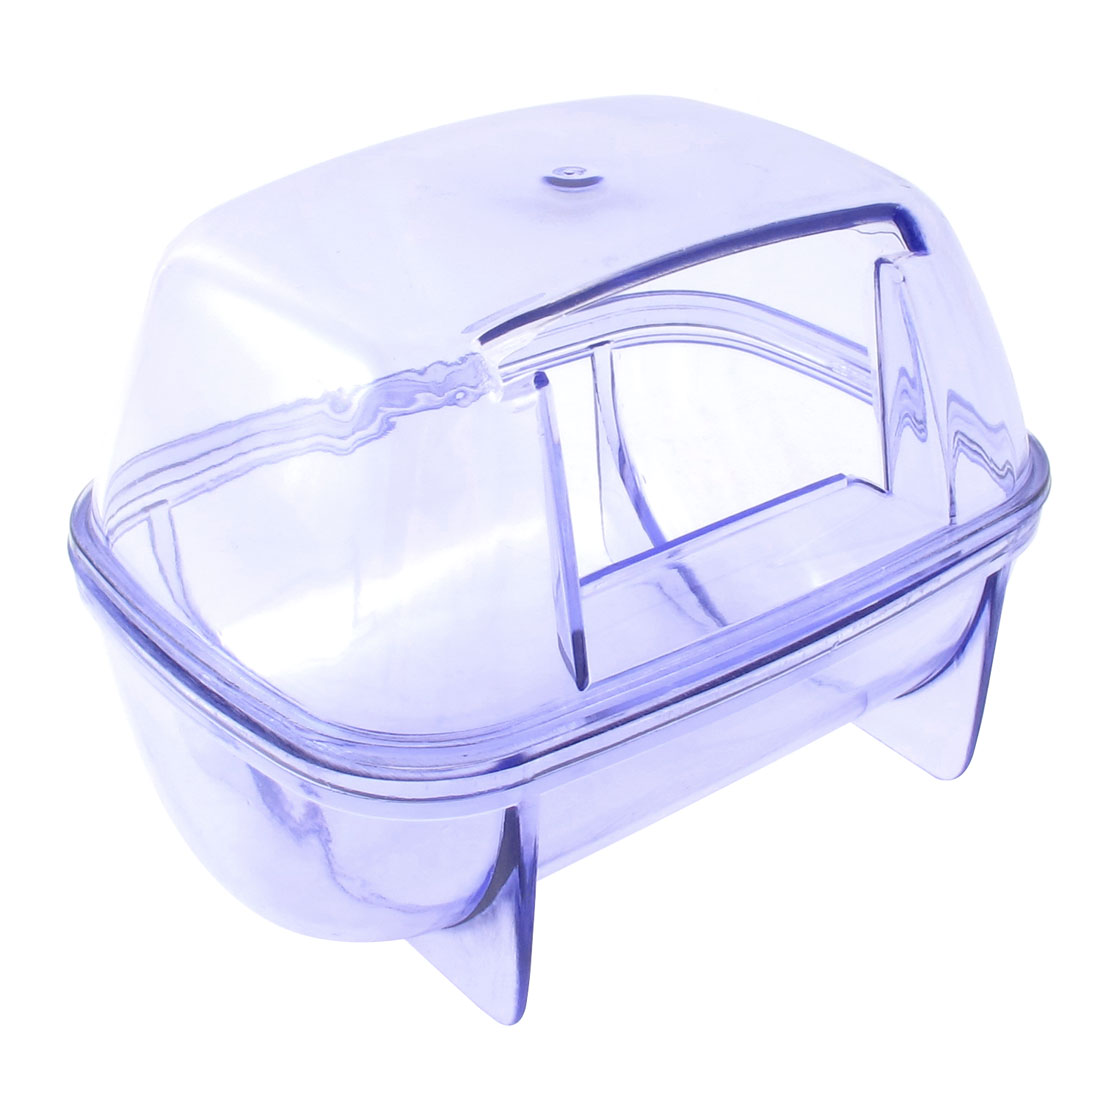 Hole Design Detachable Pet Hamster House Cage Playing Habitat Clear Blue